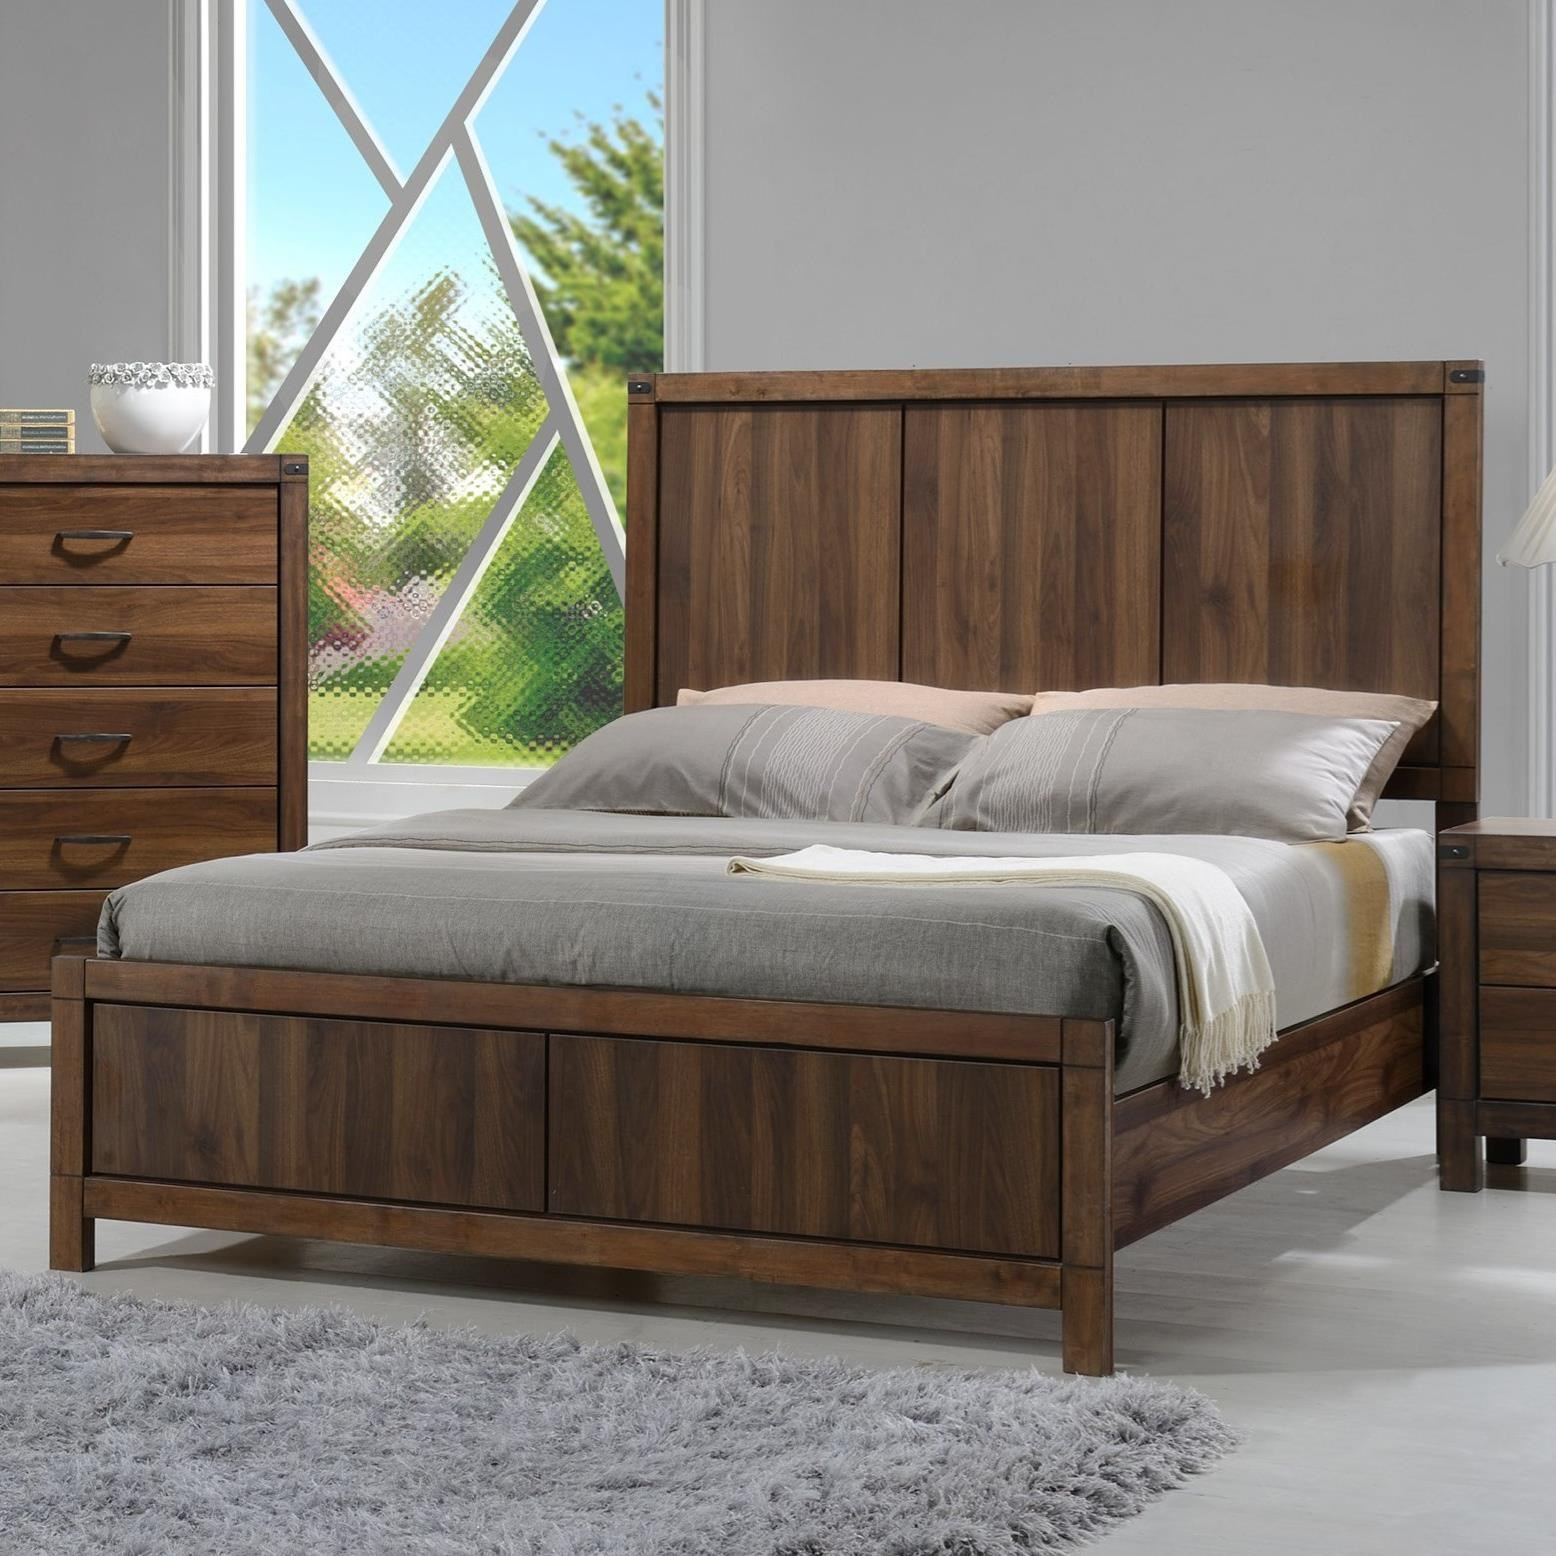 Belmont Full Headboard and Footboard by Crown Mark at Northeast Factory Direct